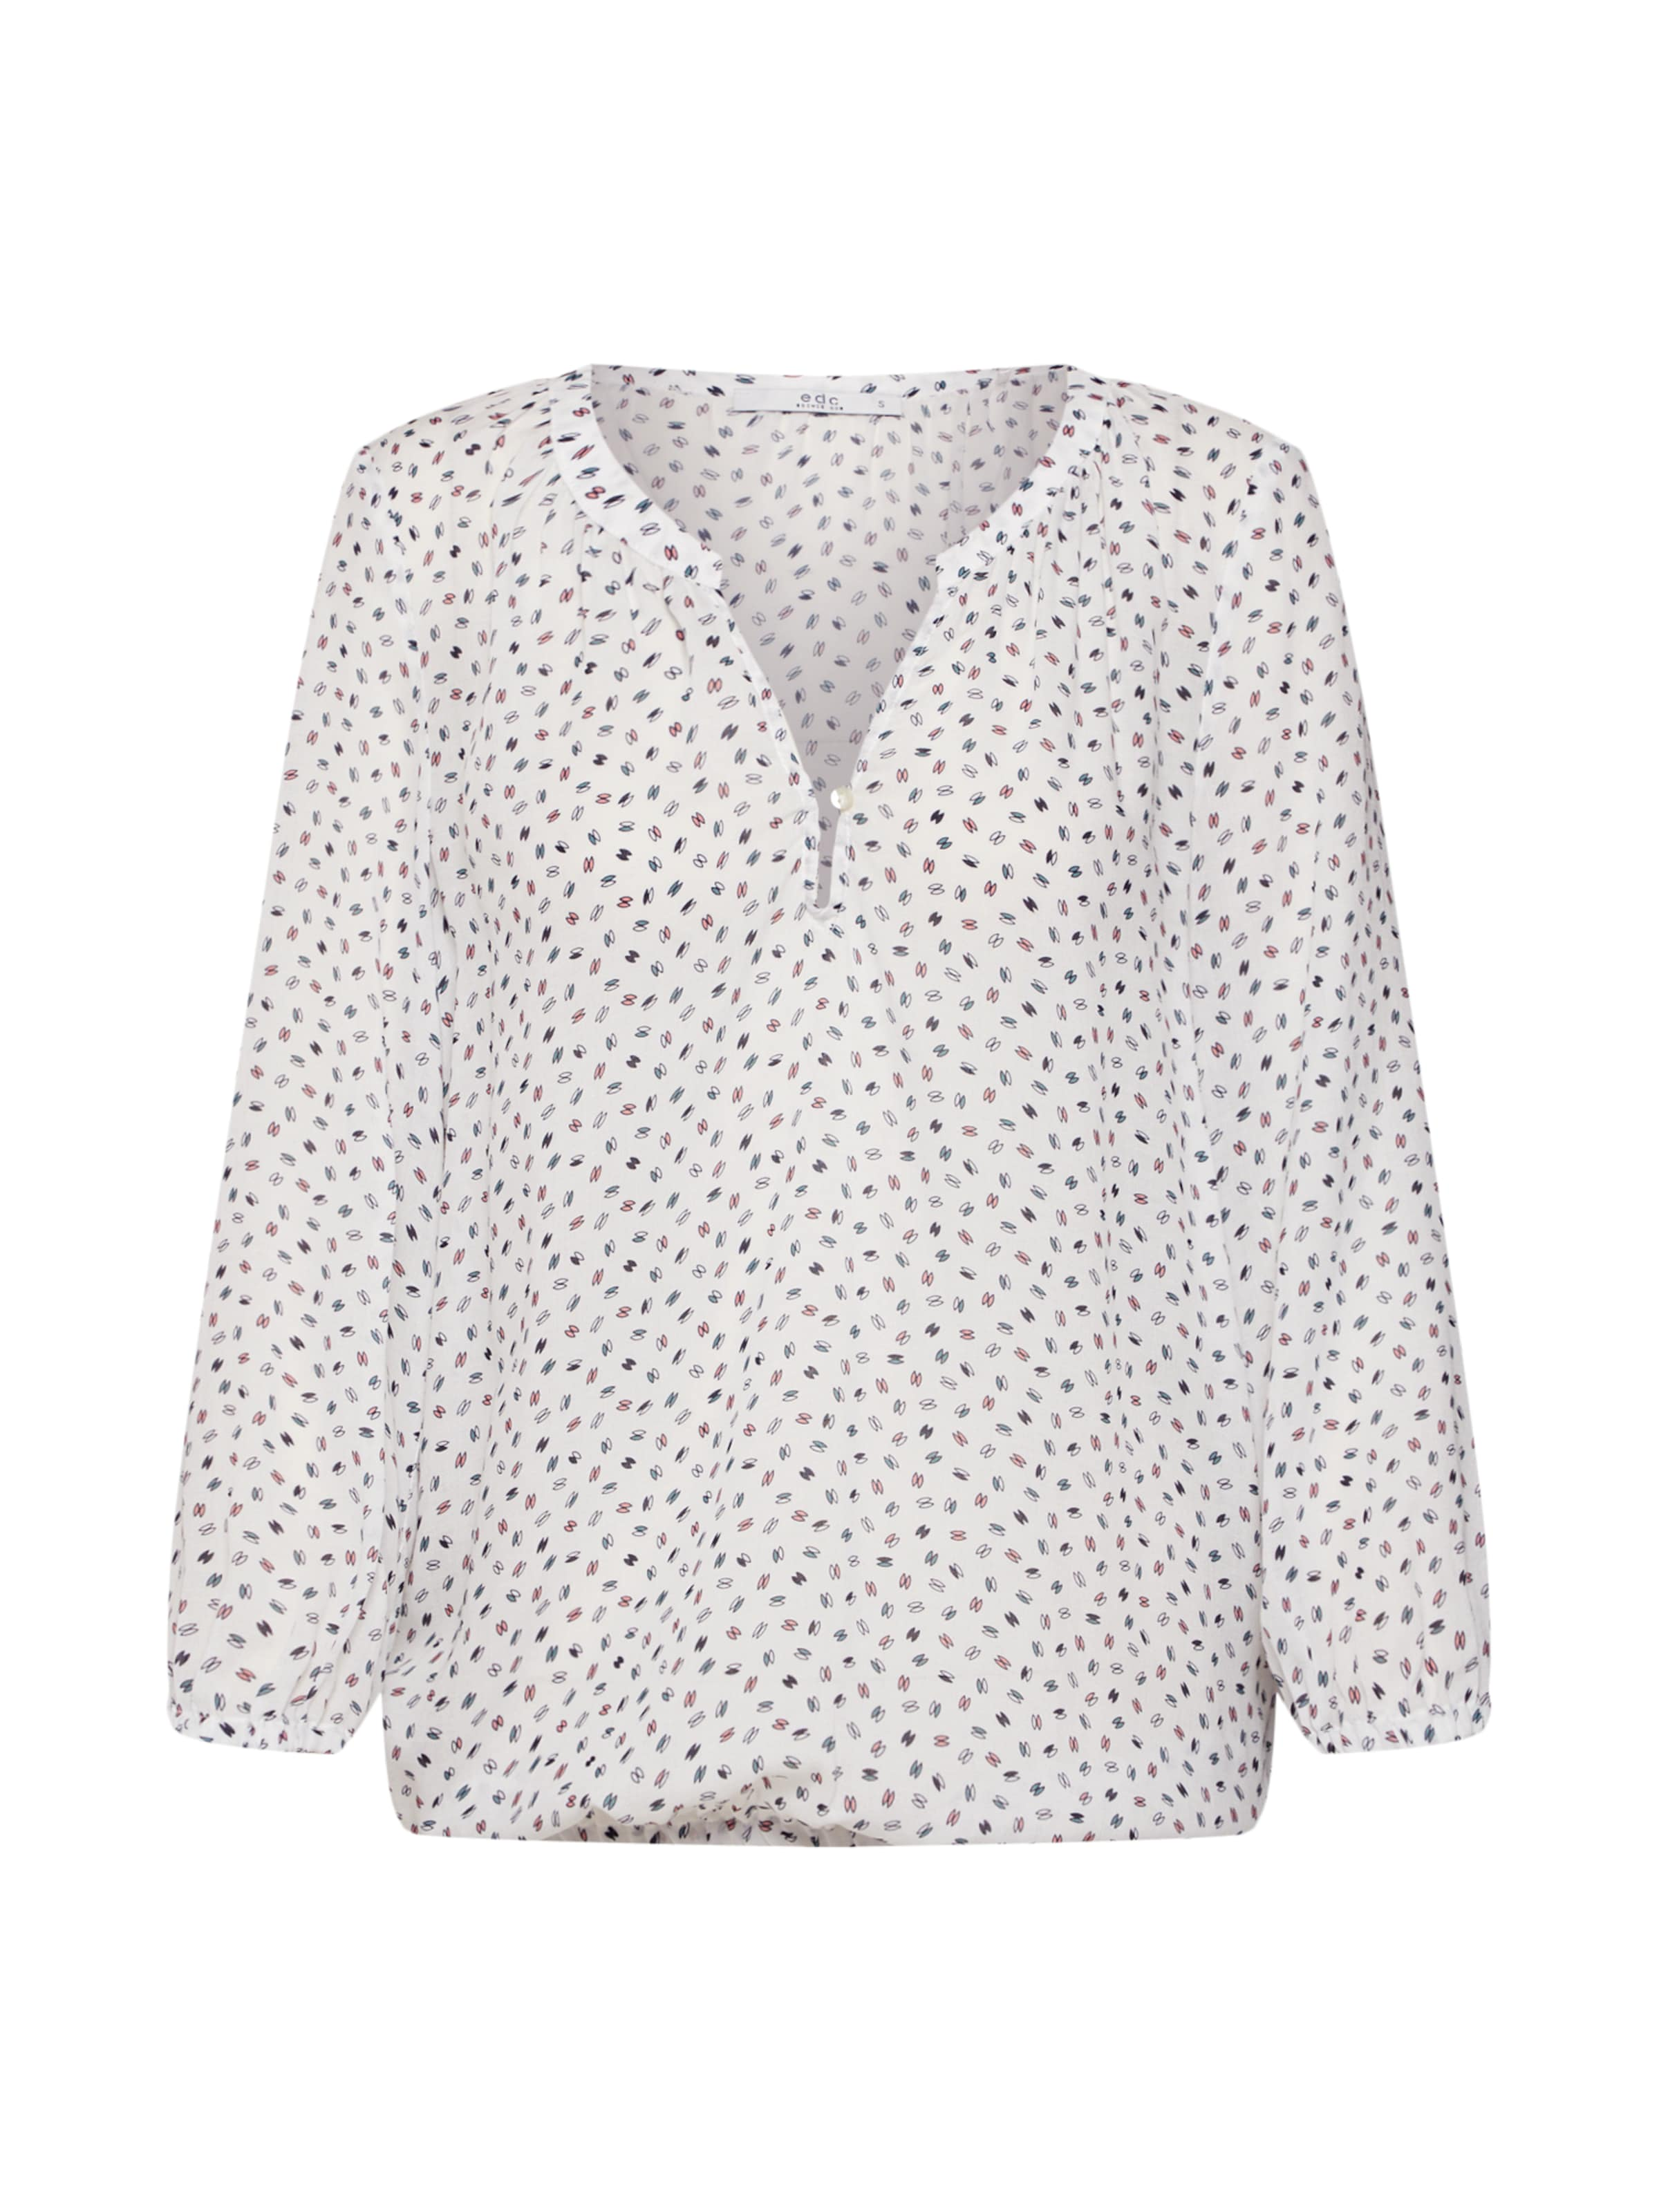 By Offwhite In Woven' Blouses Edc 'lightviscosevoi Blouse Esprit fygb6Y7